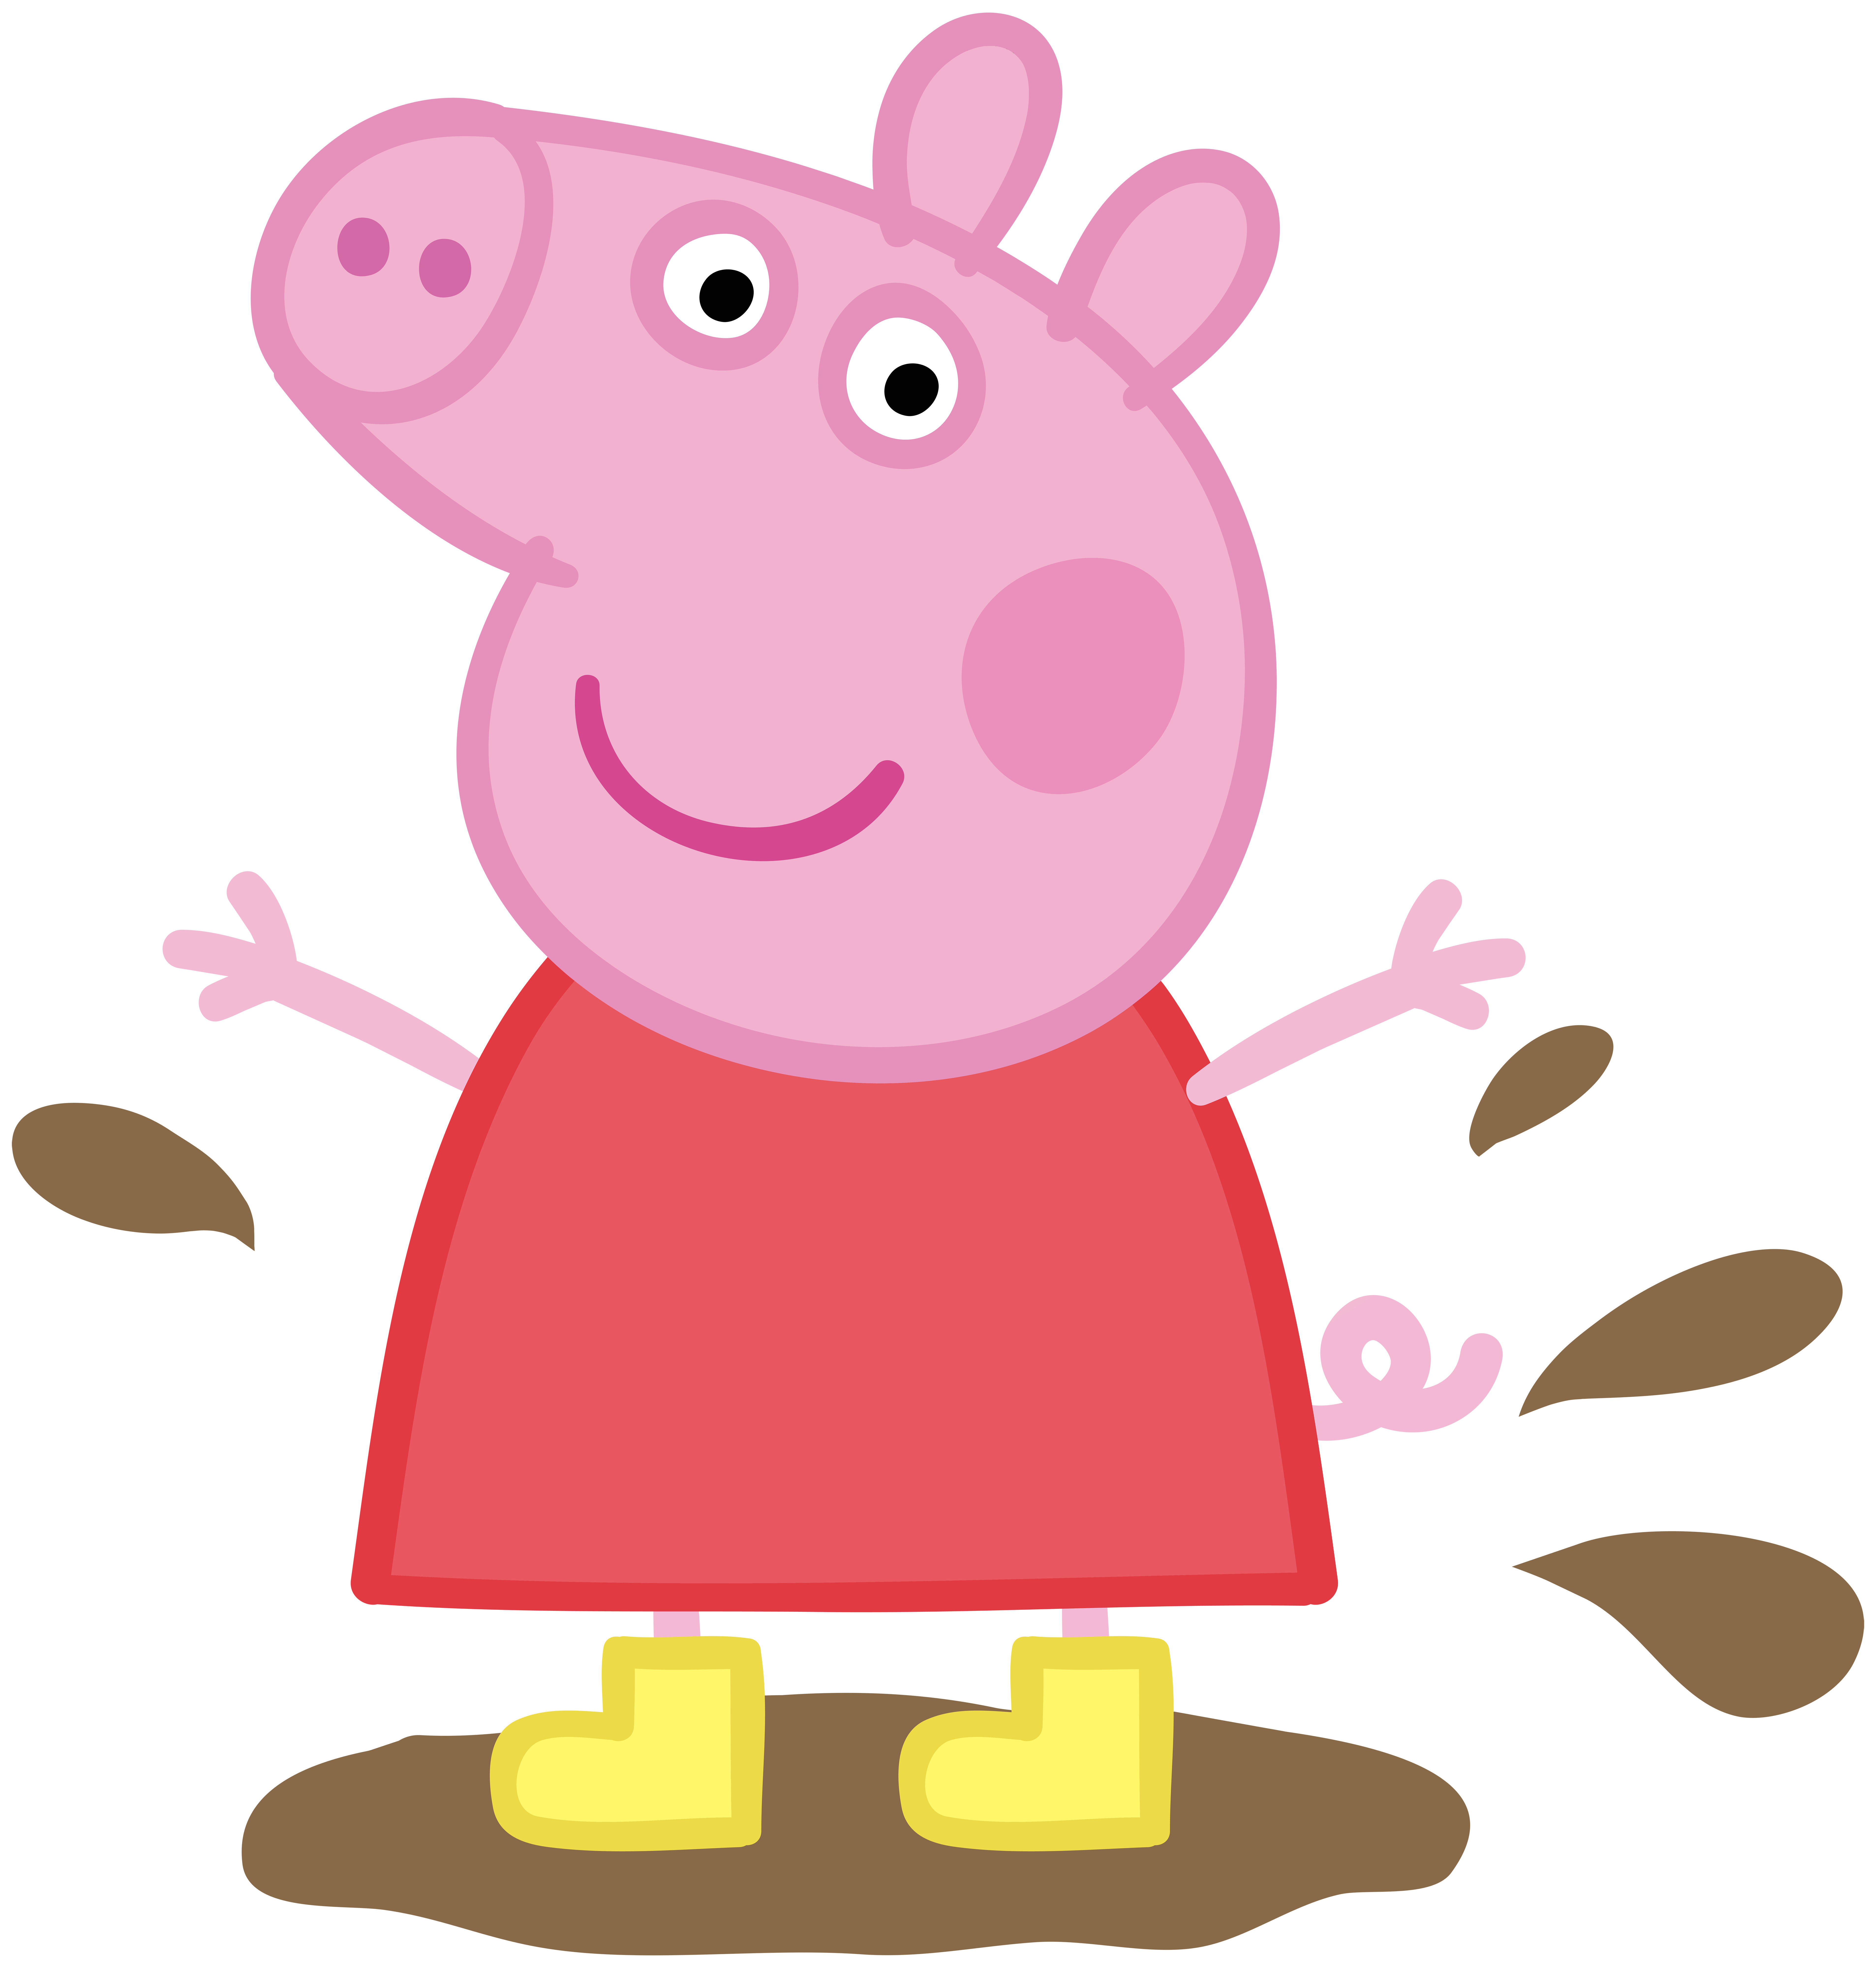 Puddle clipart png. Peppa pig in muddy